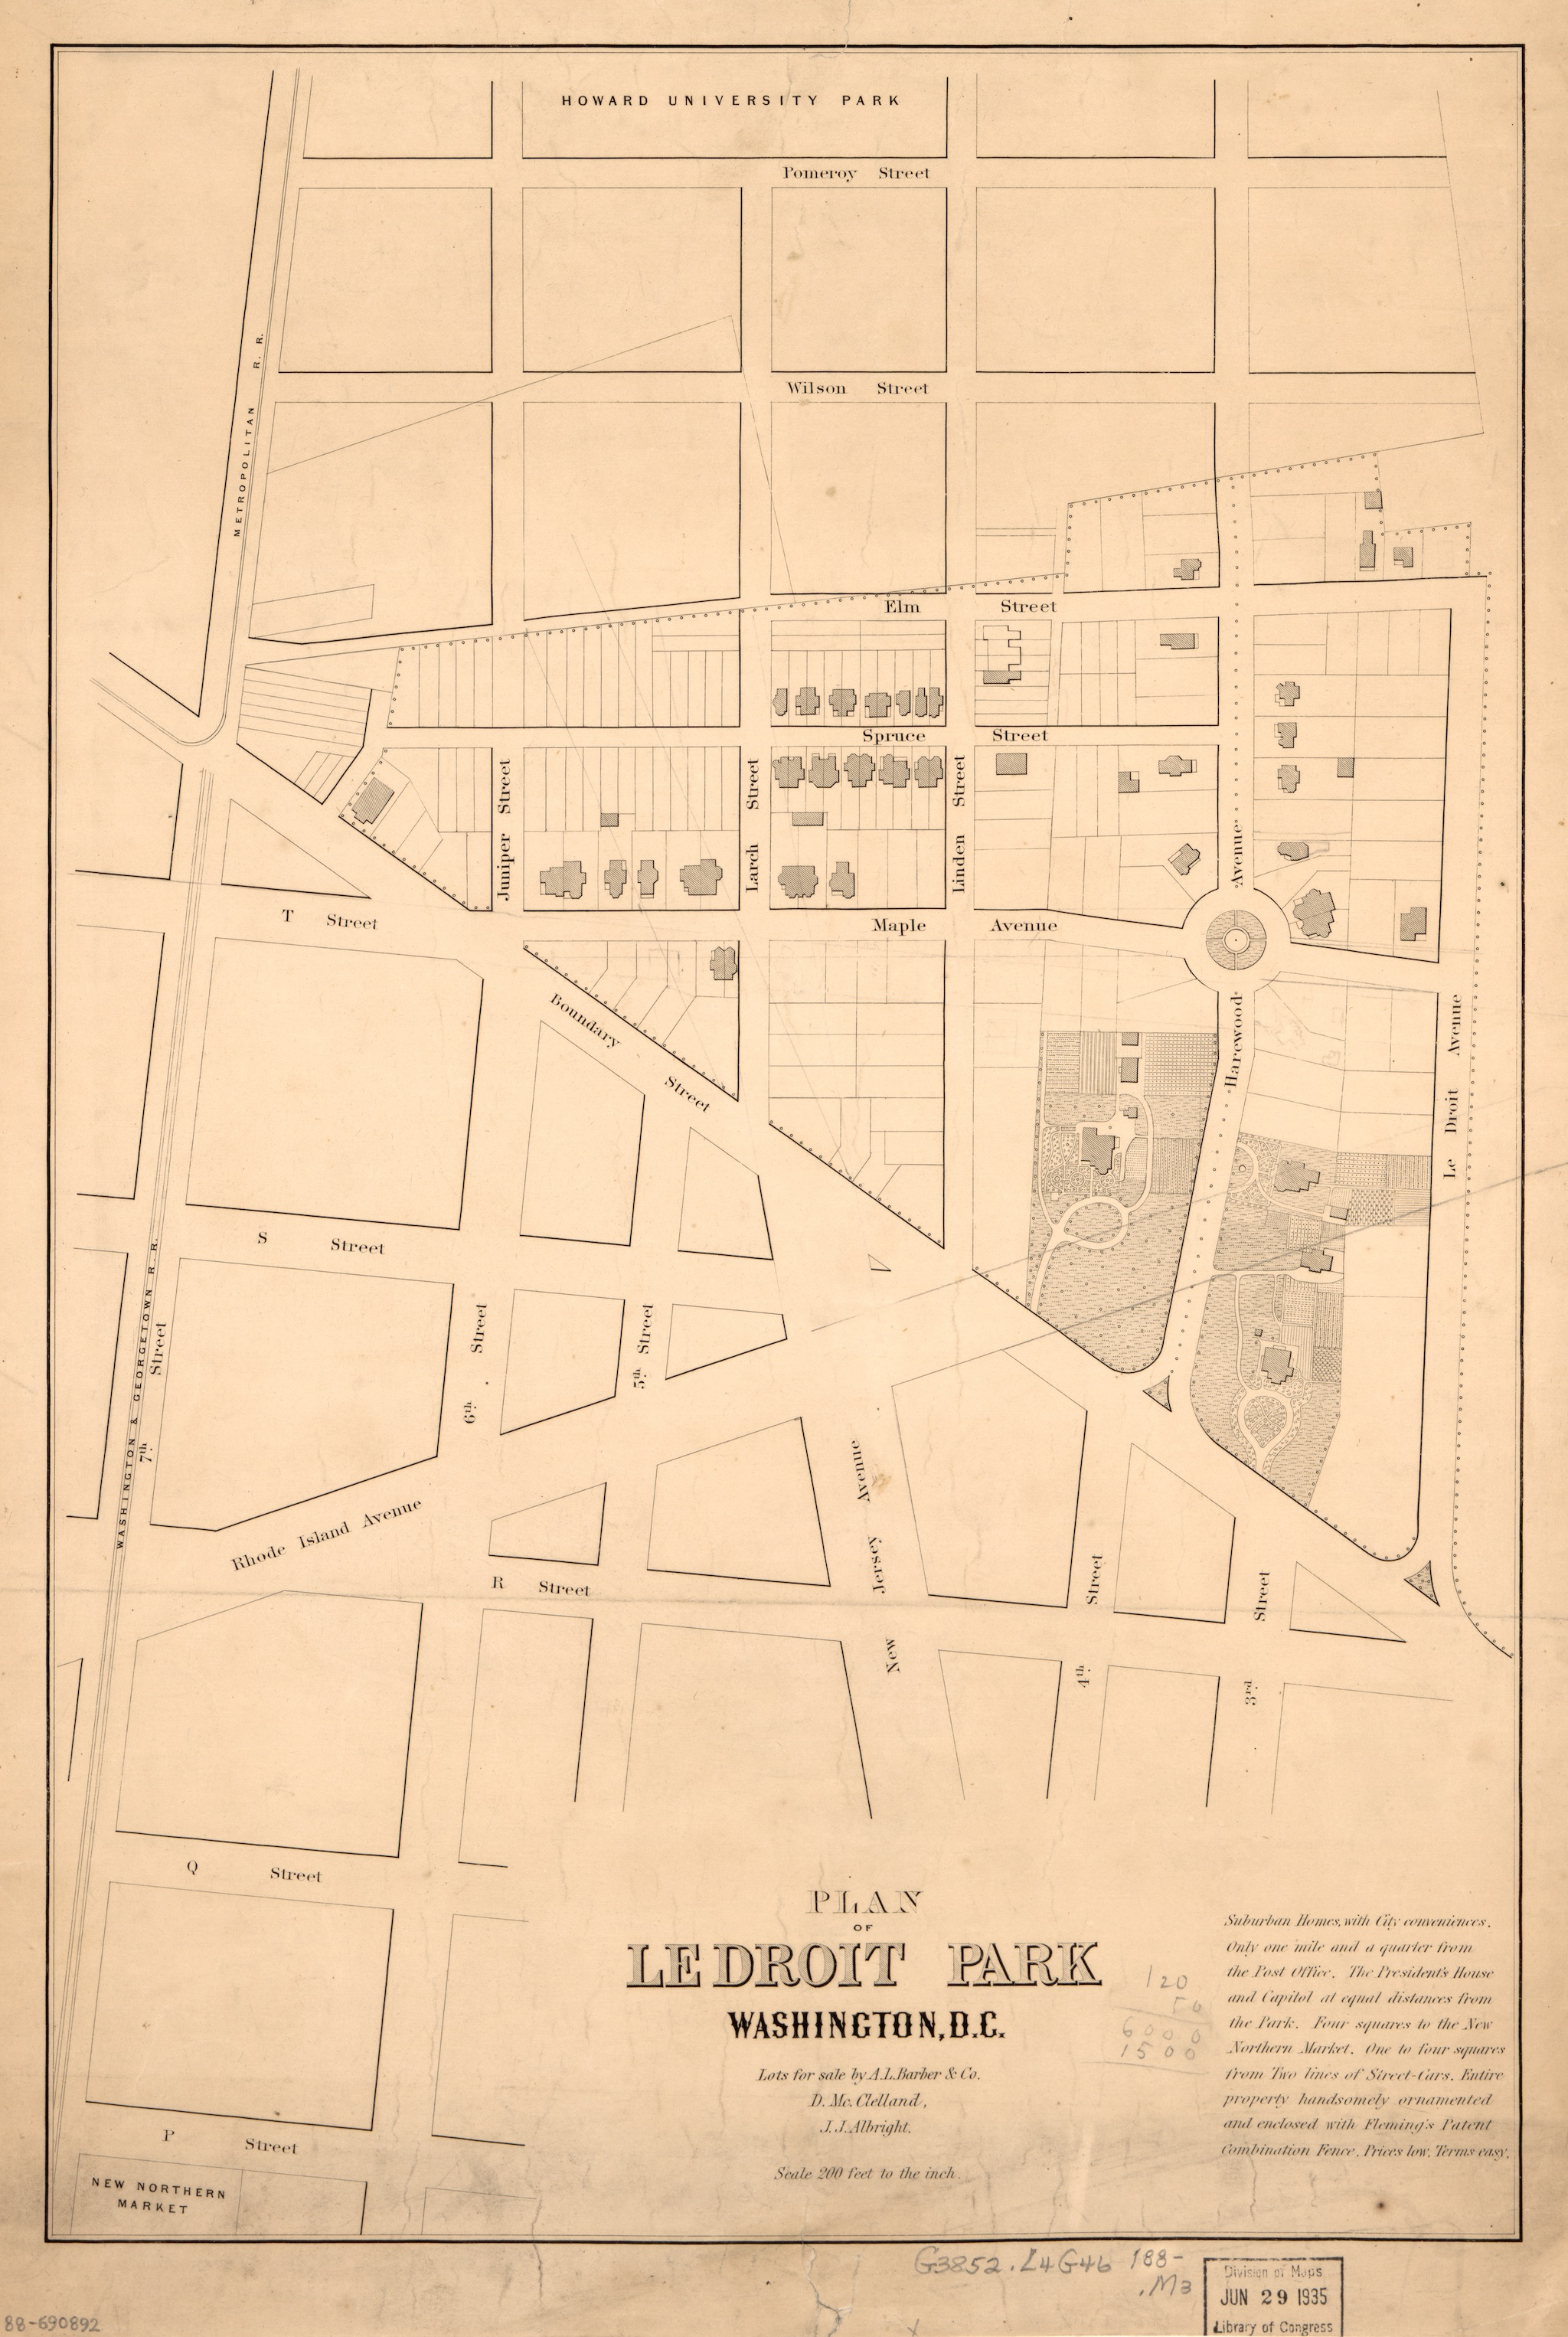 (1880) Map of LeDroit Park. Image courtesy of Library of Congress - http://ghostsofdc.org/image/zoom/rare-1880-plan-ledroit-park/17116/view.jpg, Public Domain, https://en.wikipedia.org/w/index.php?curid=47658431